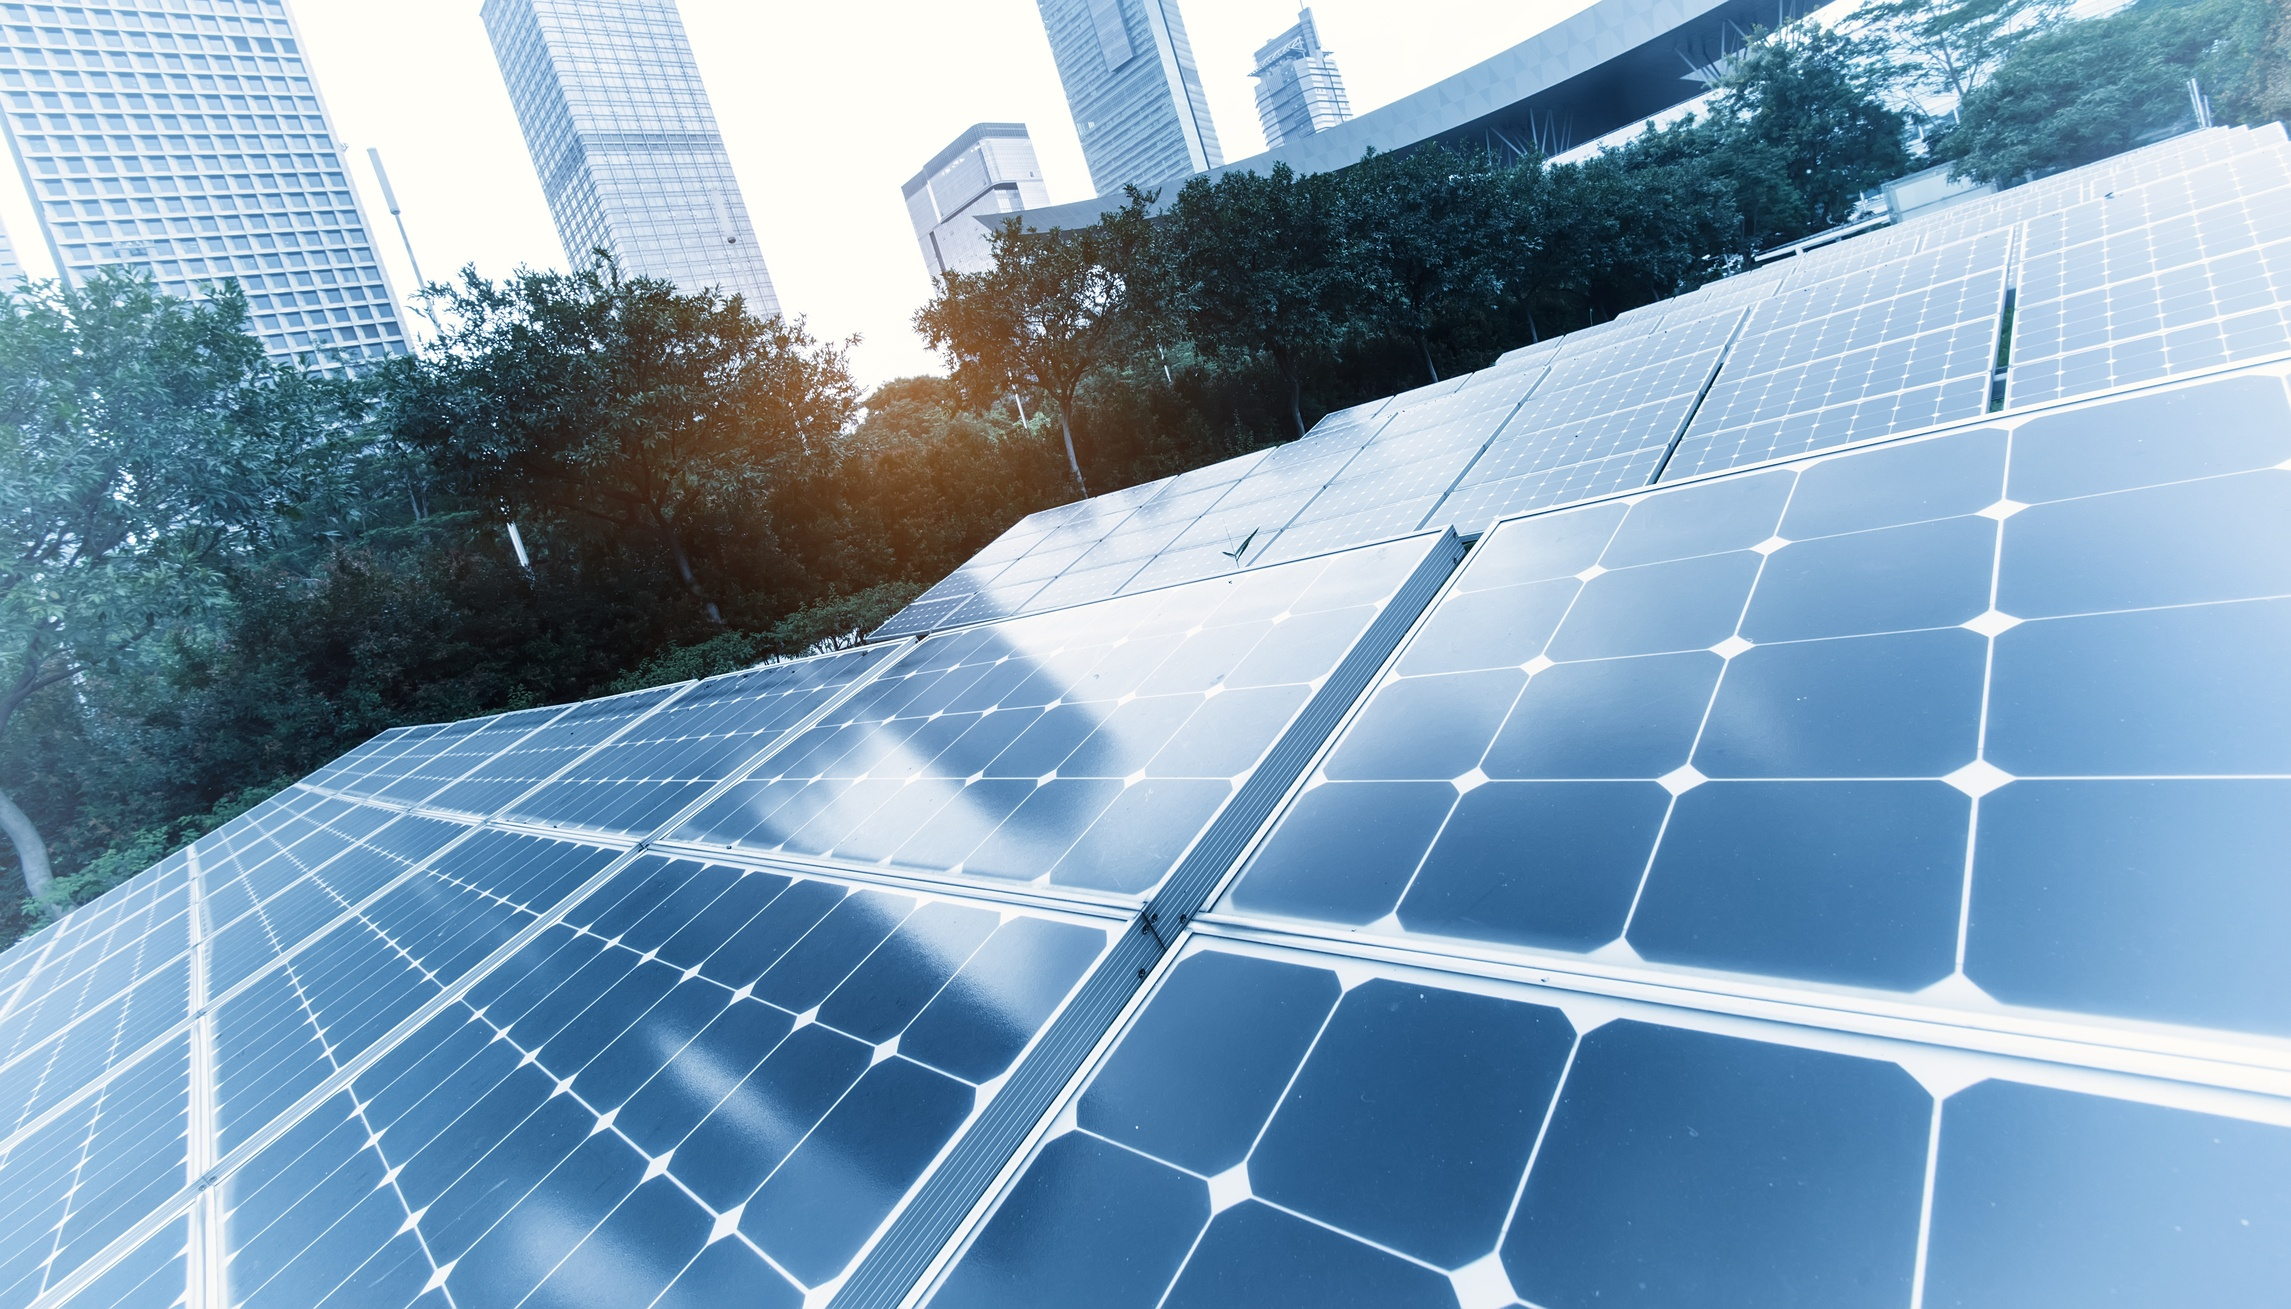 Solar Power Plant in modern city,Sustainable Renewable Energy.